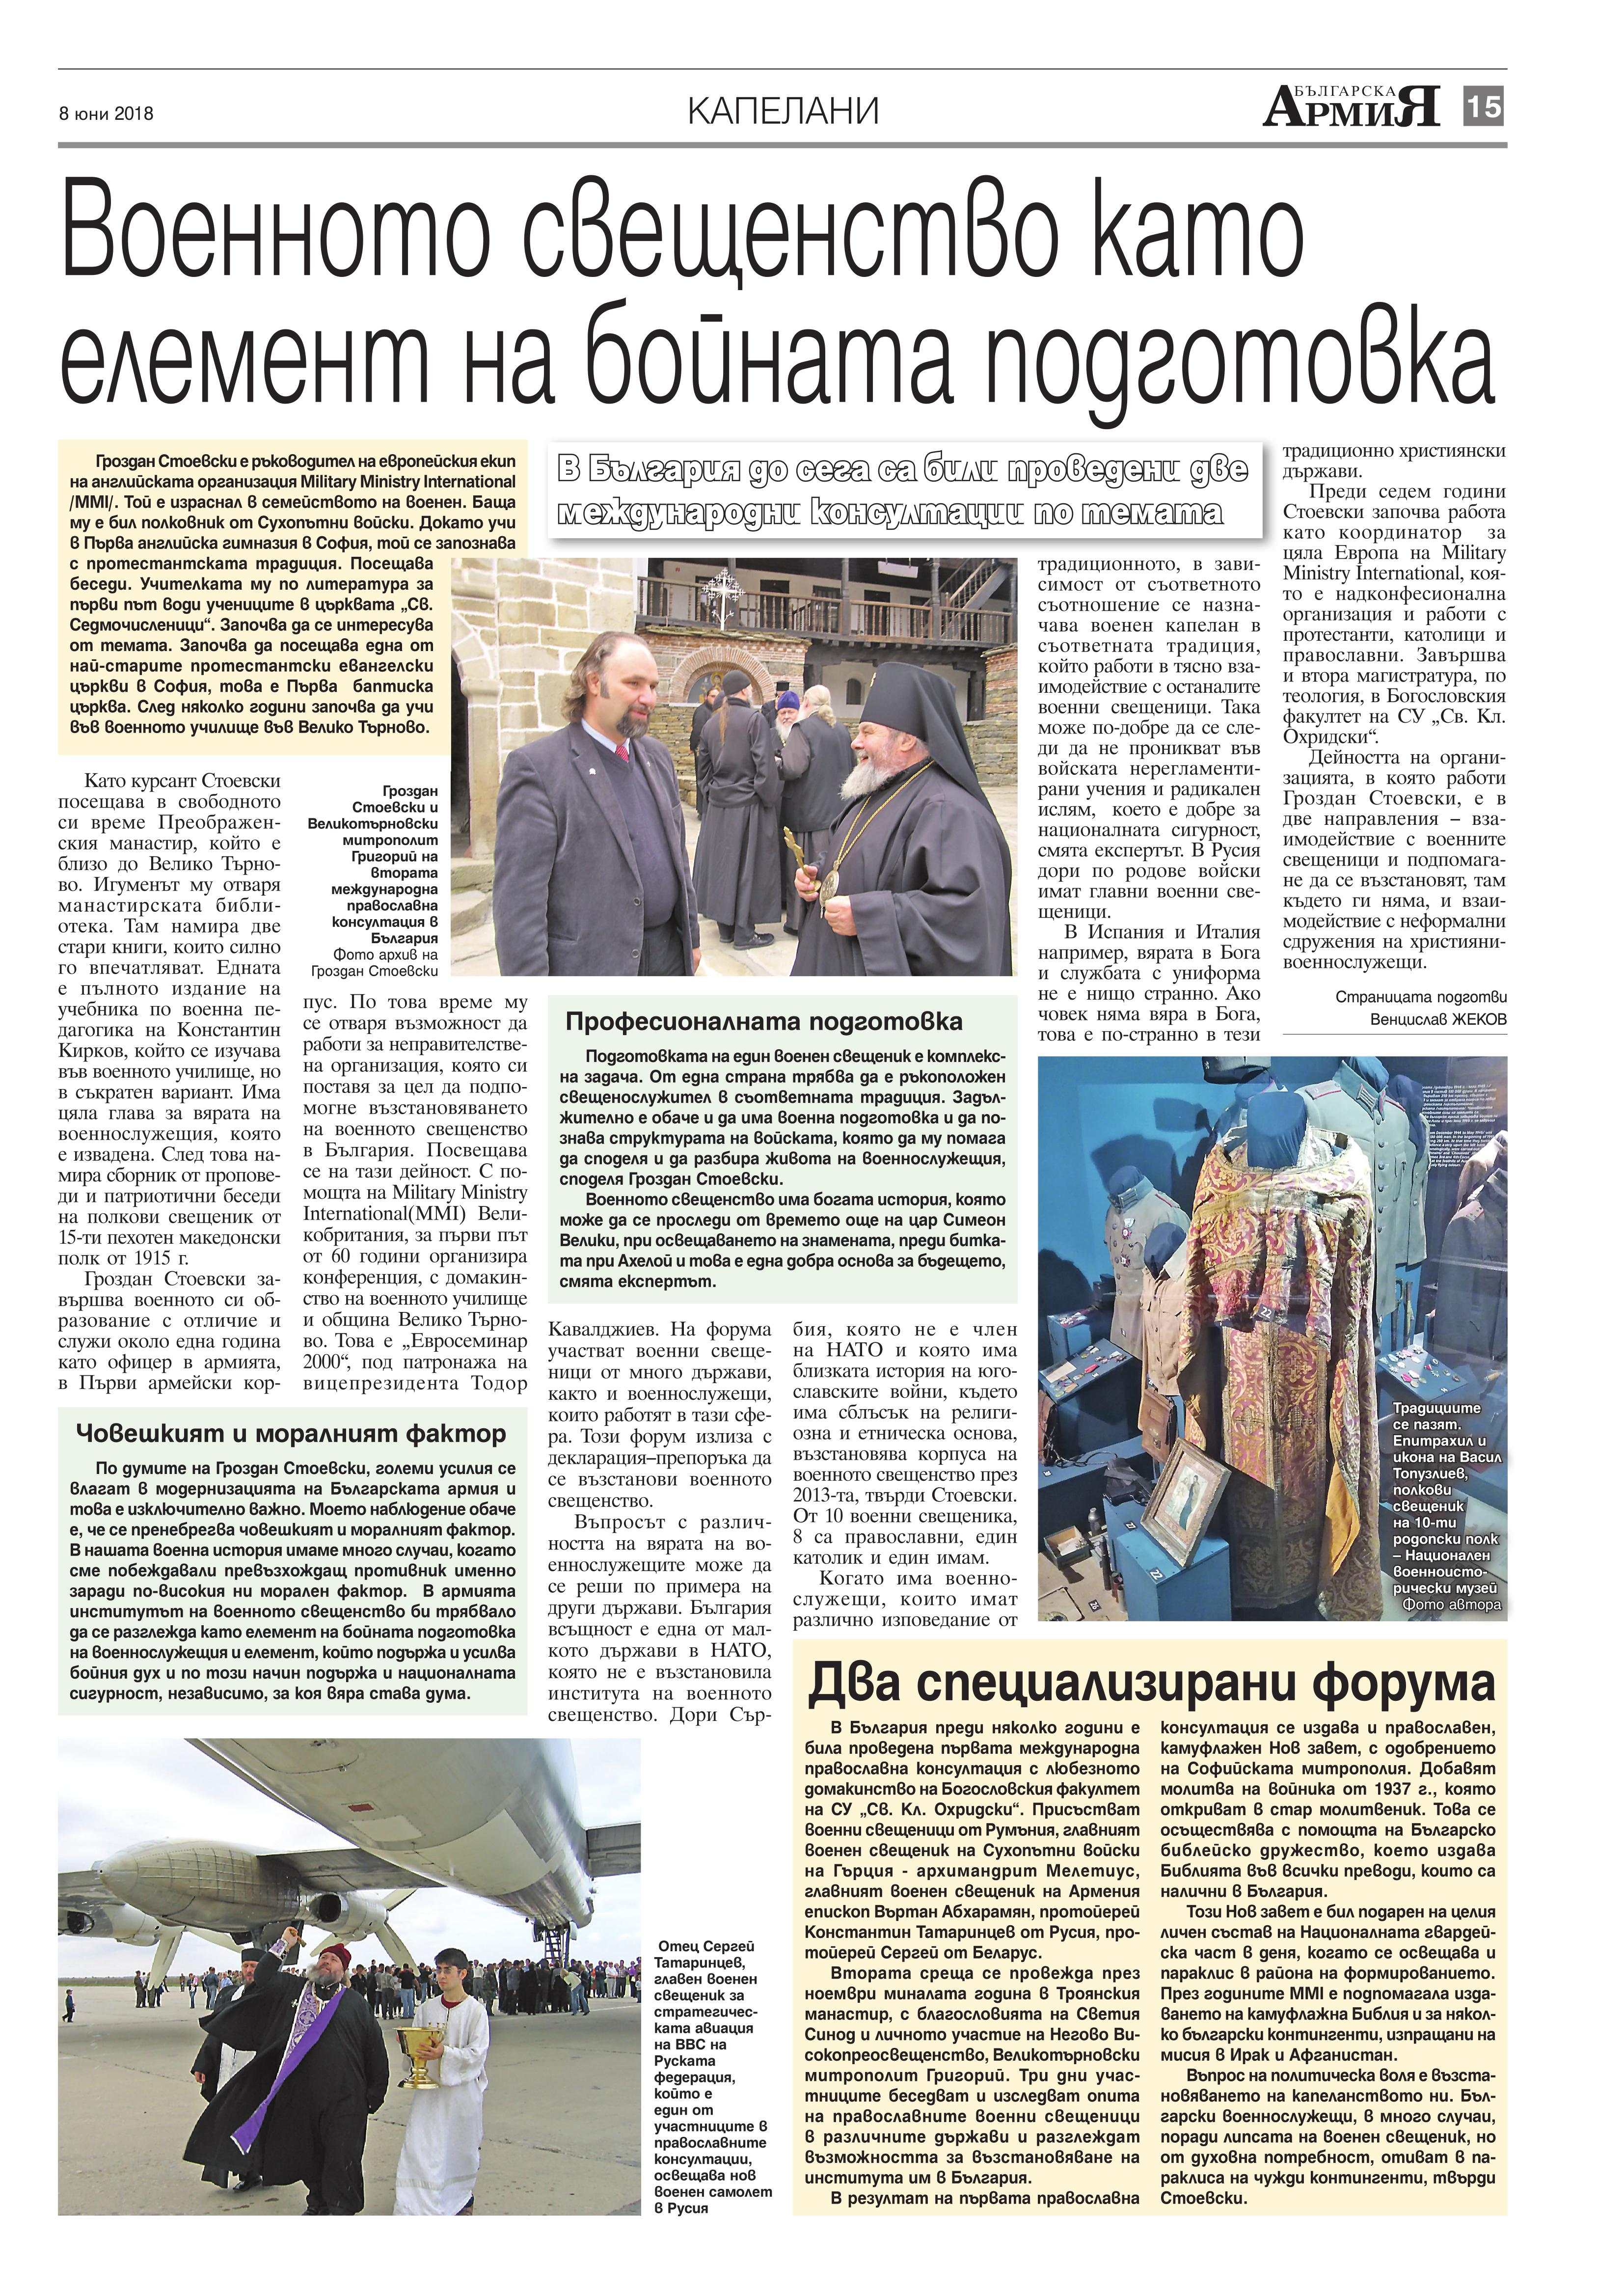 http://armymedia.bg/wp-content/uploads/2015/06/15.page1_-54.jpg